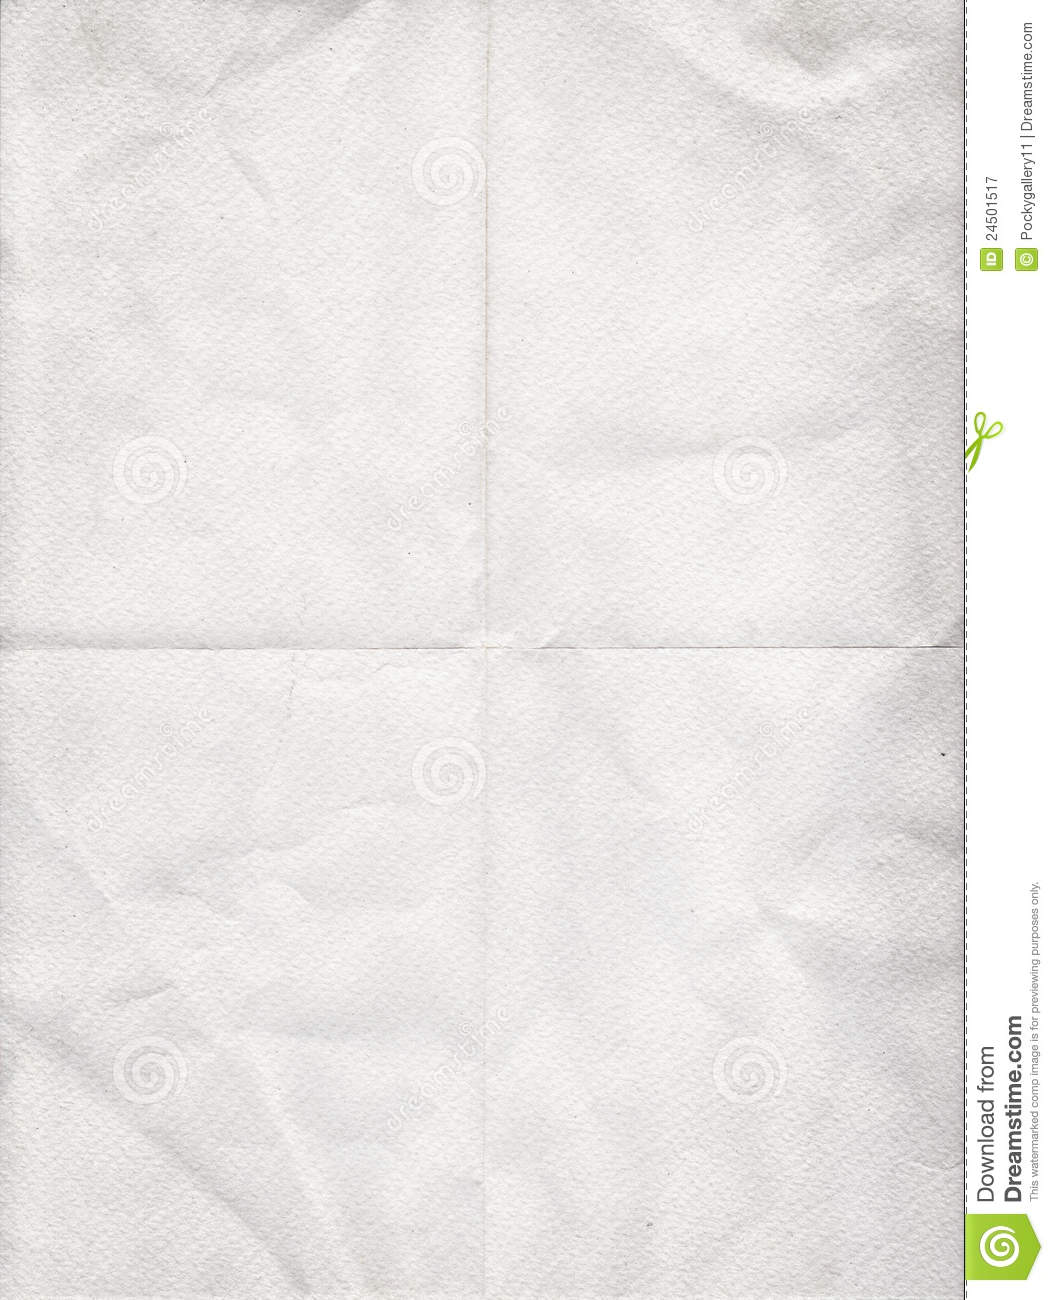 old white paper folded in four stock image image of page